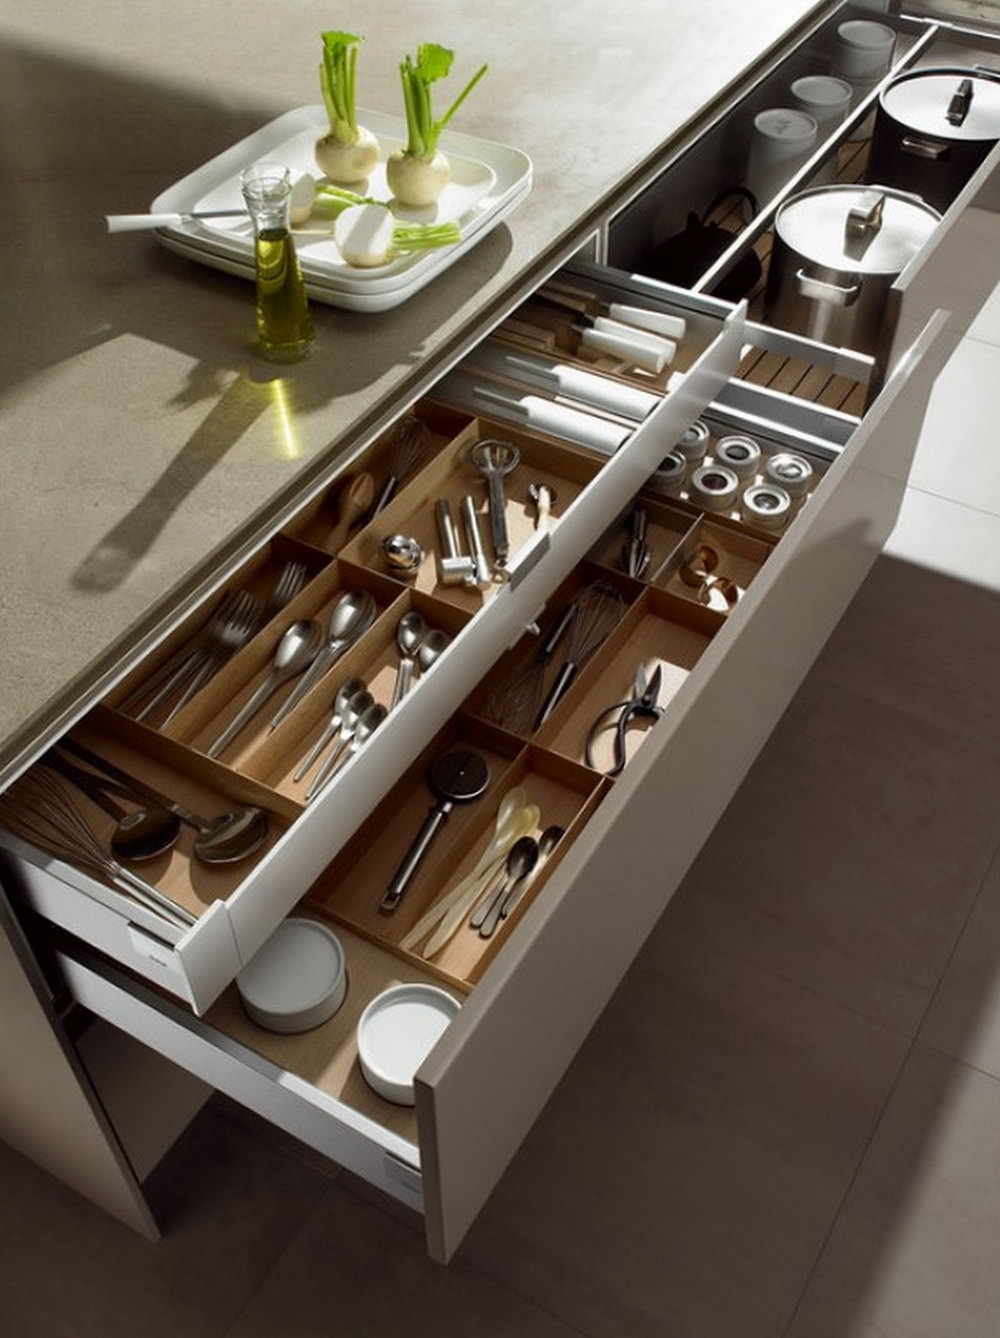 Organize Kitchen Cabinets And Drawers